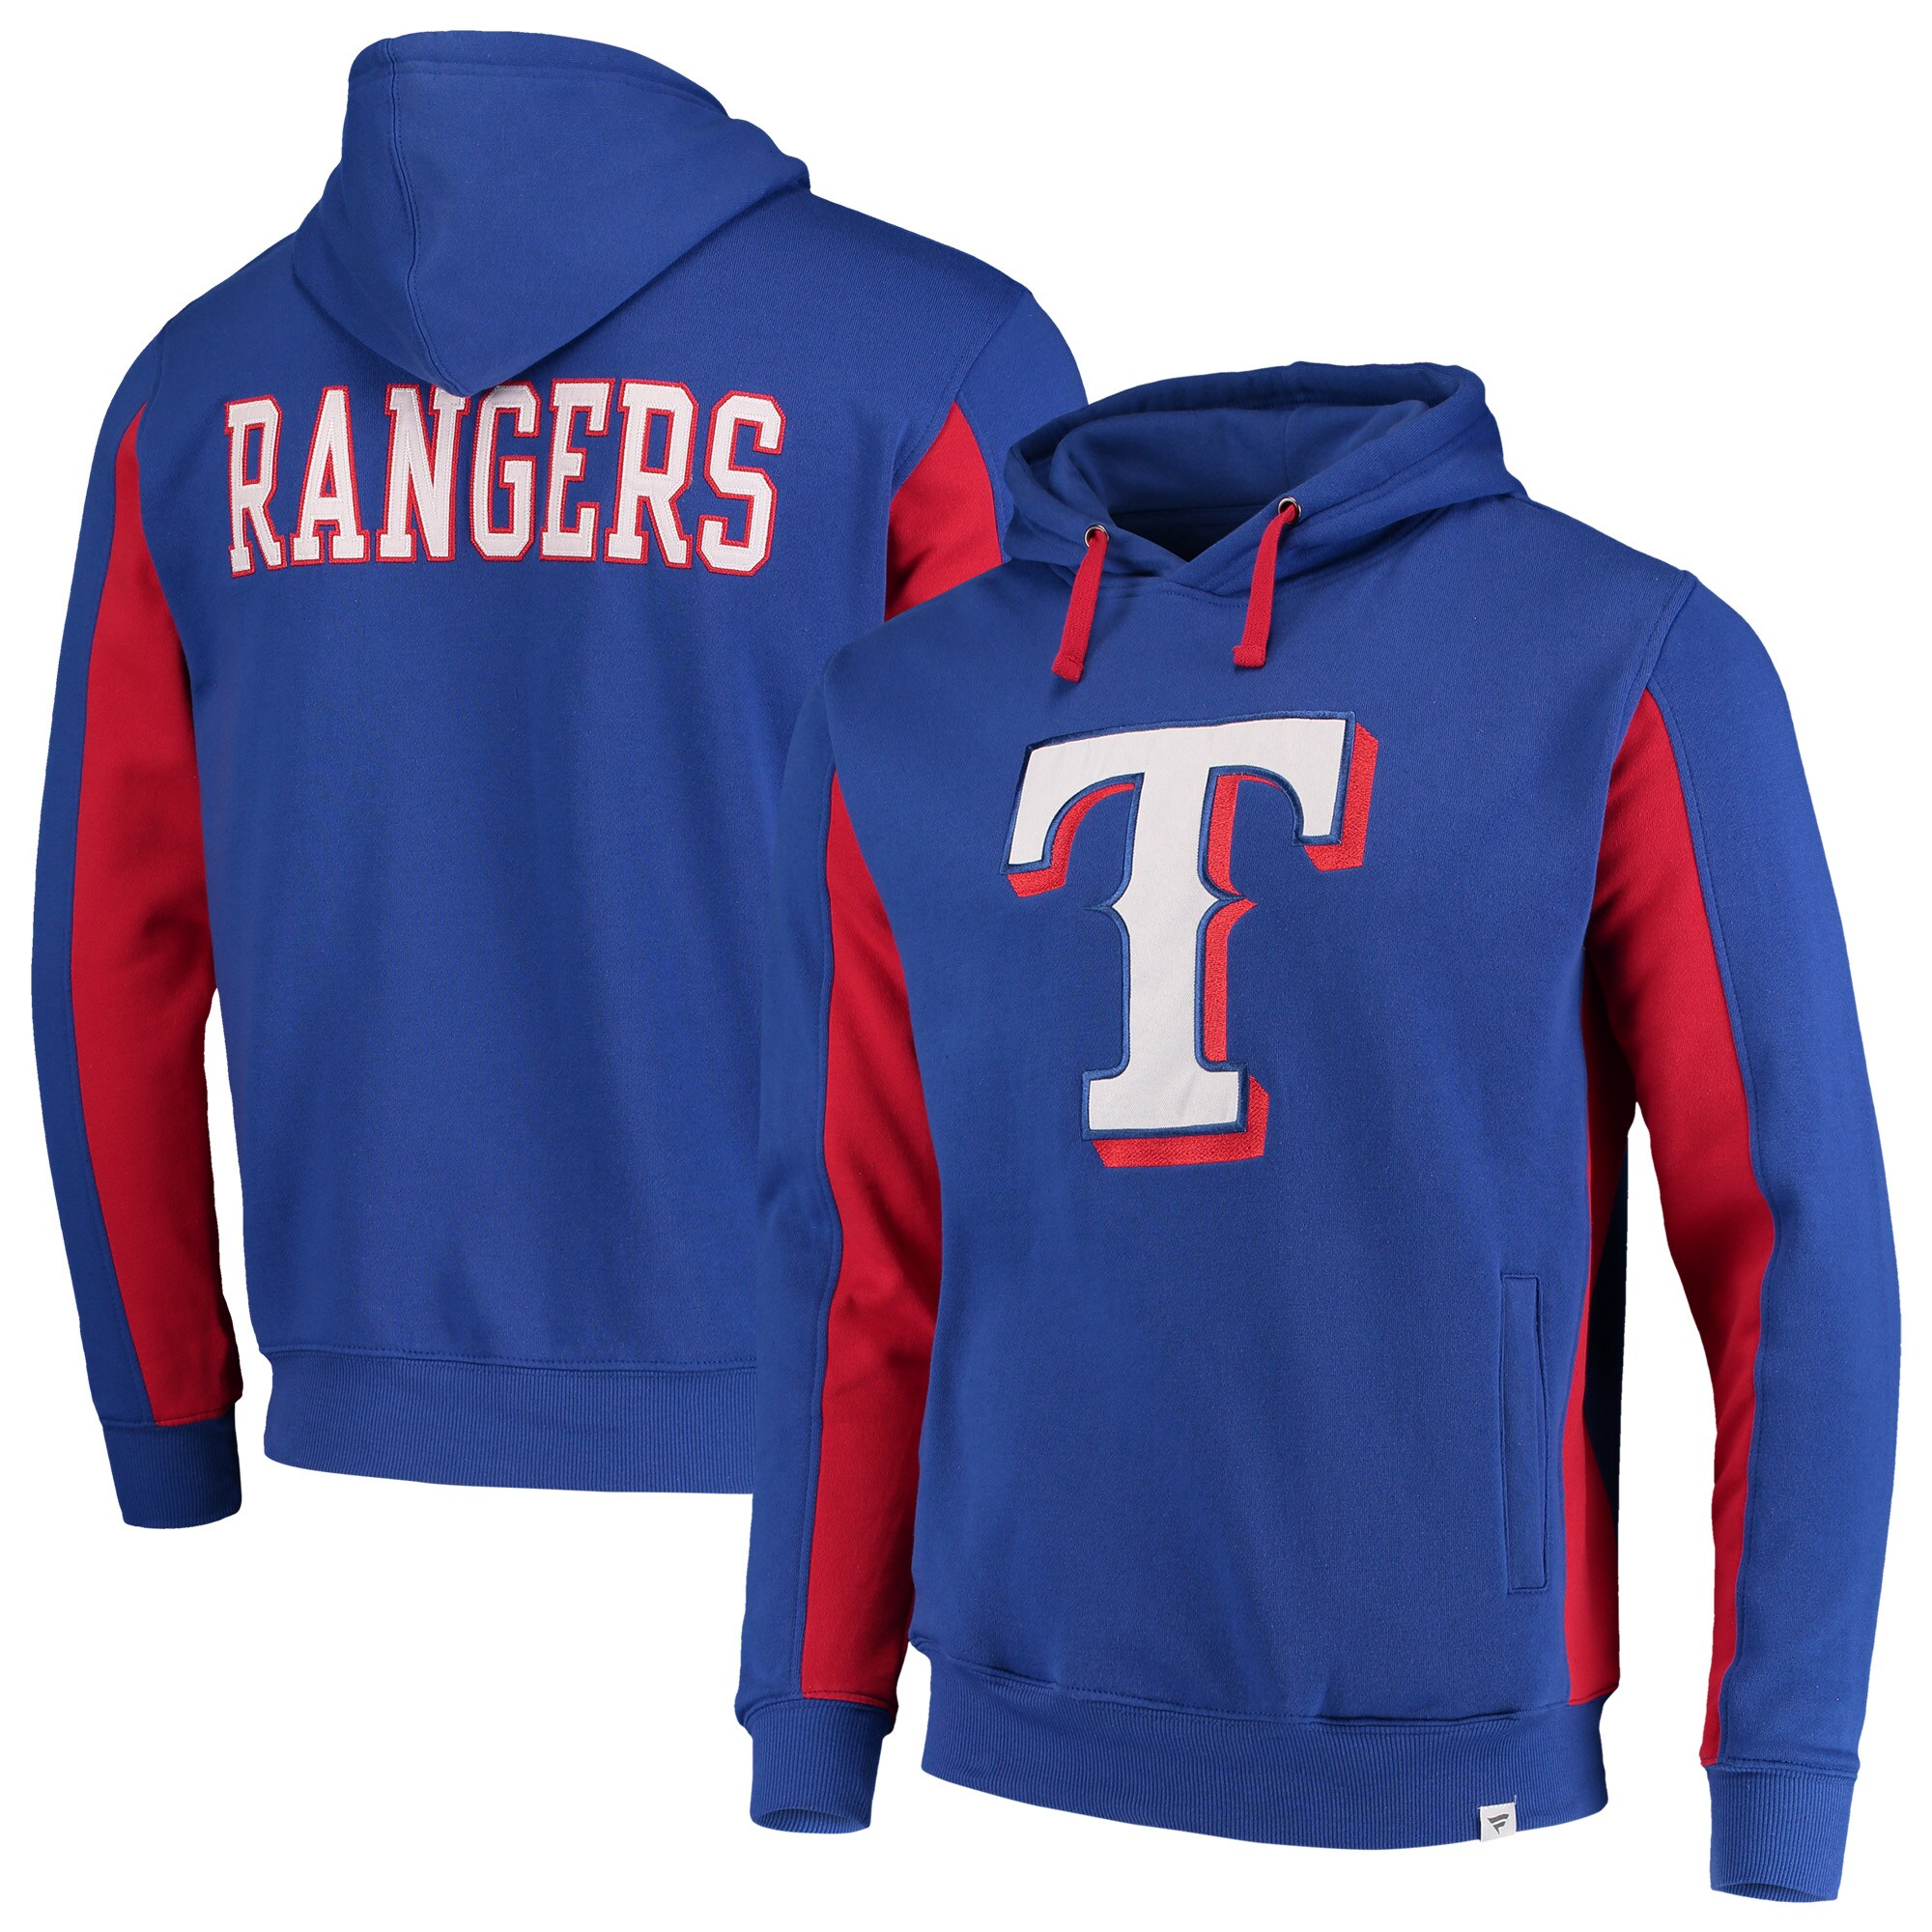 Texas Rangers Fanatics Branded Team Logo Iconic Fleece Pullover Hoodie - Royal/Red